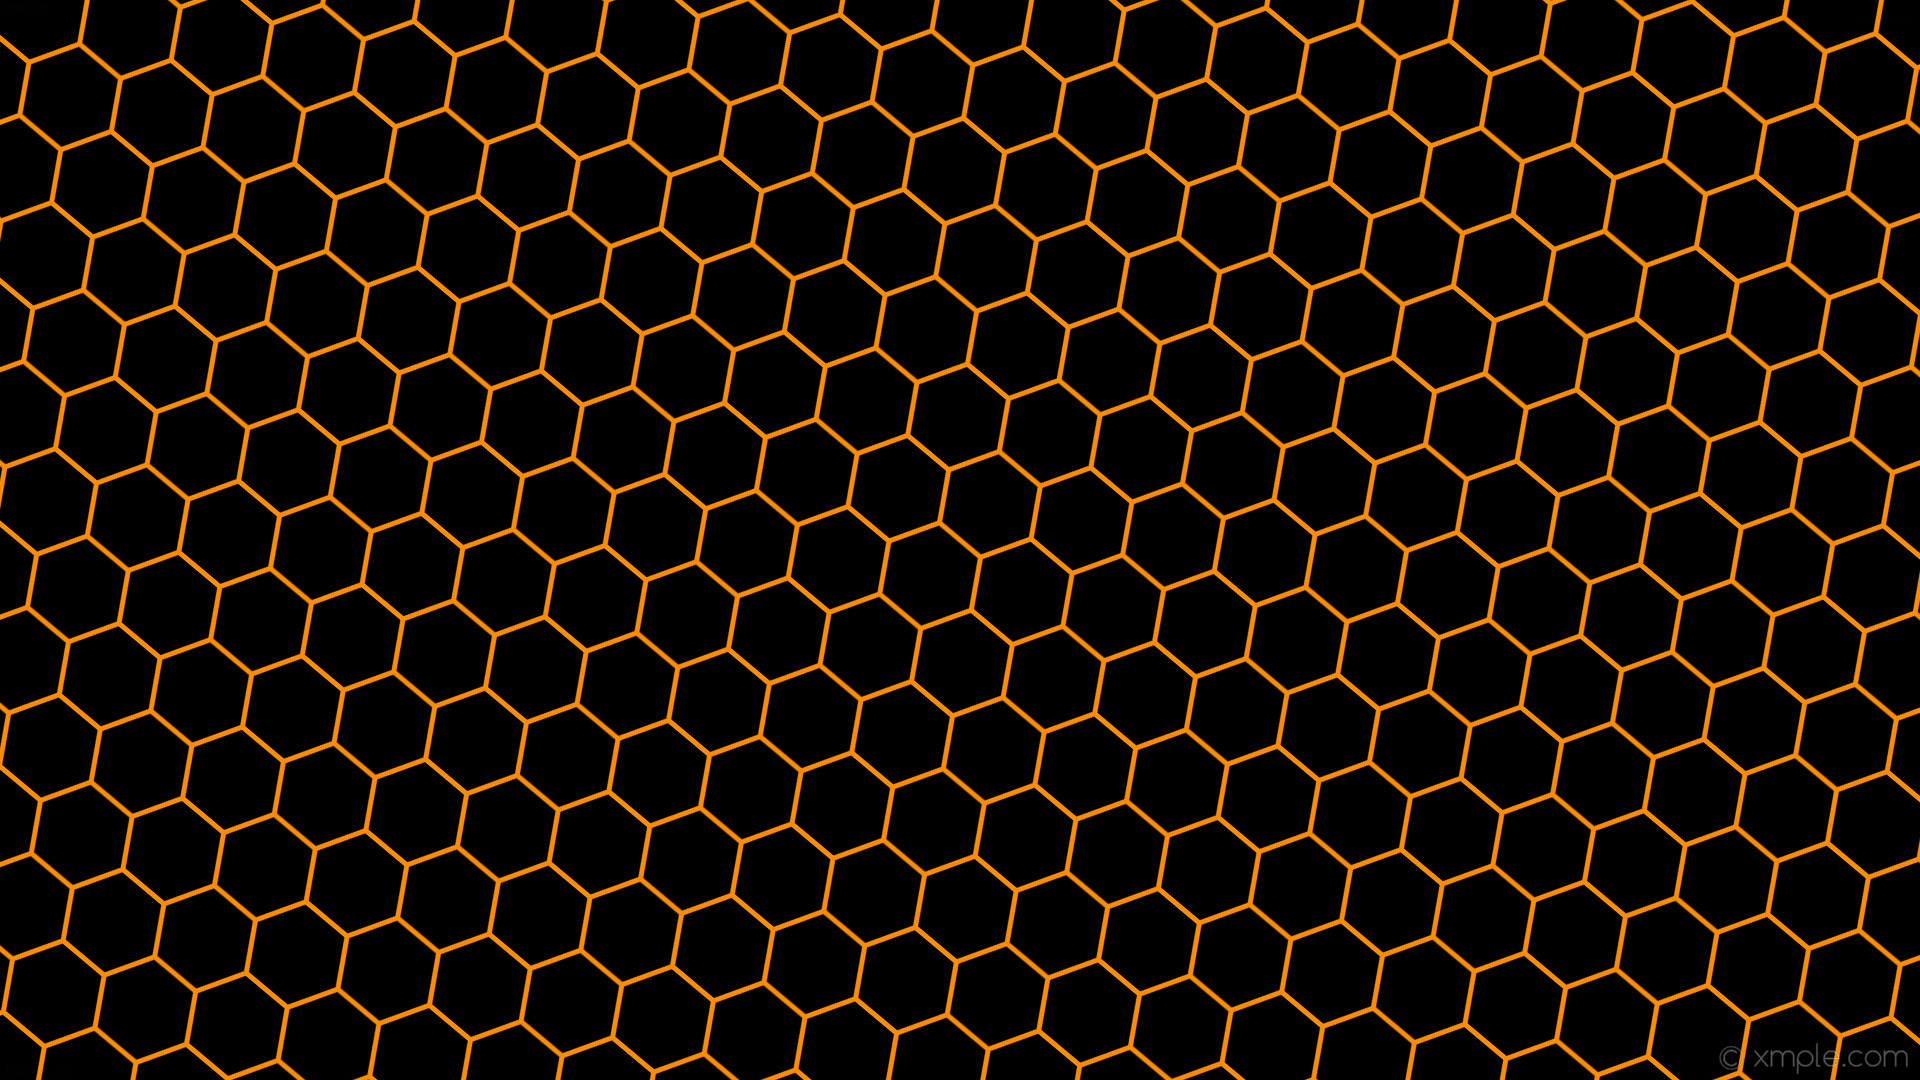 Res: 1920x1080, wallpaper beehive orange honeycomb hexagon black dark orange #000000  #ff8c00 diagonal 50° 5px